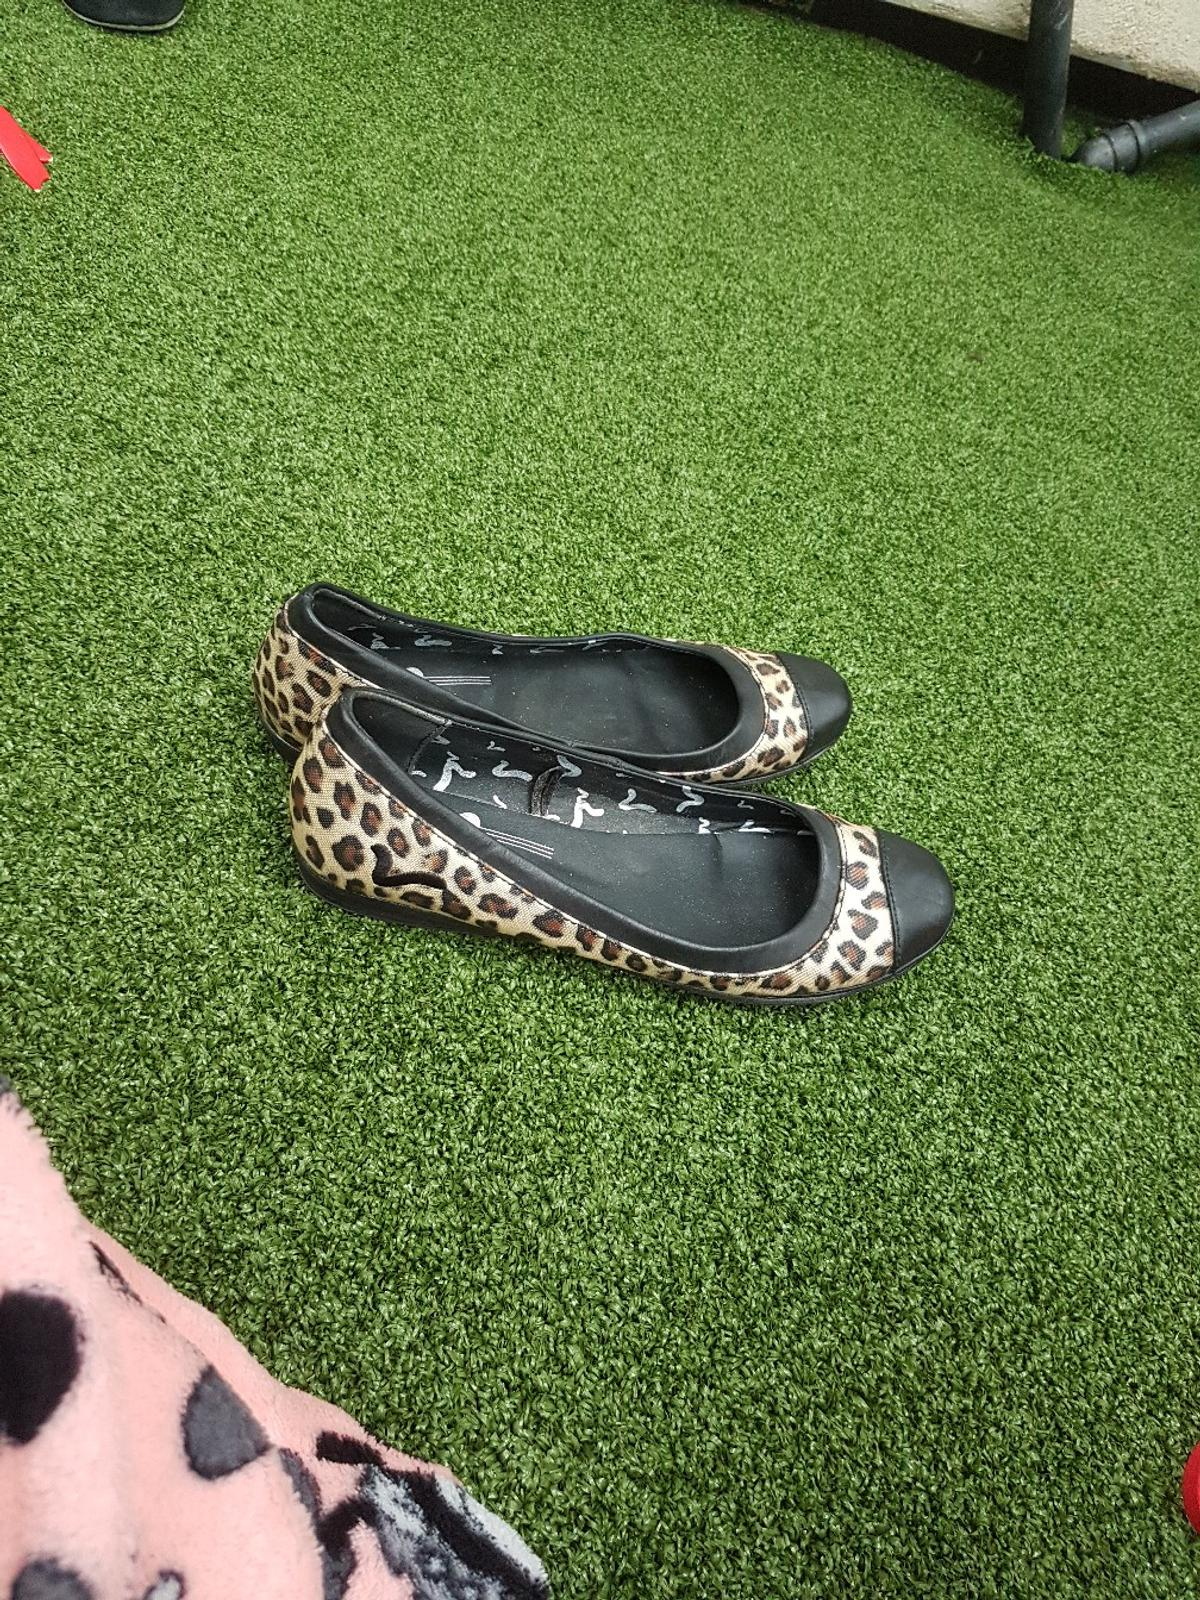 size 4 used but in good condition